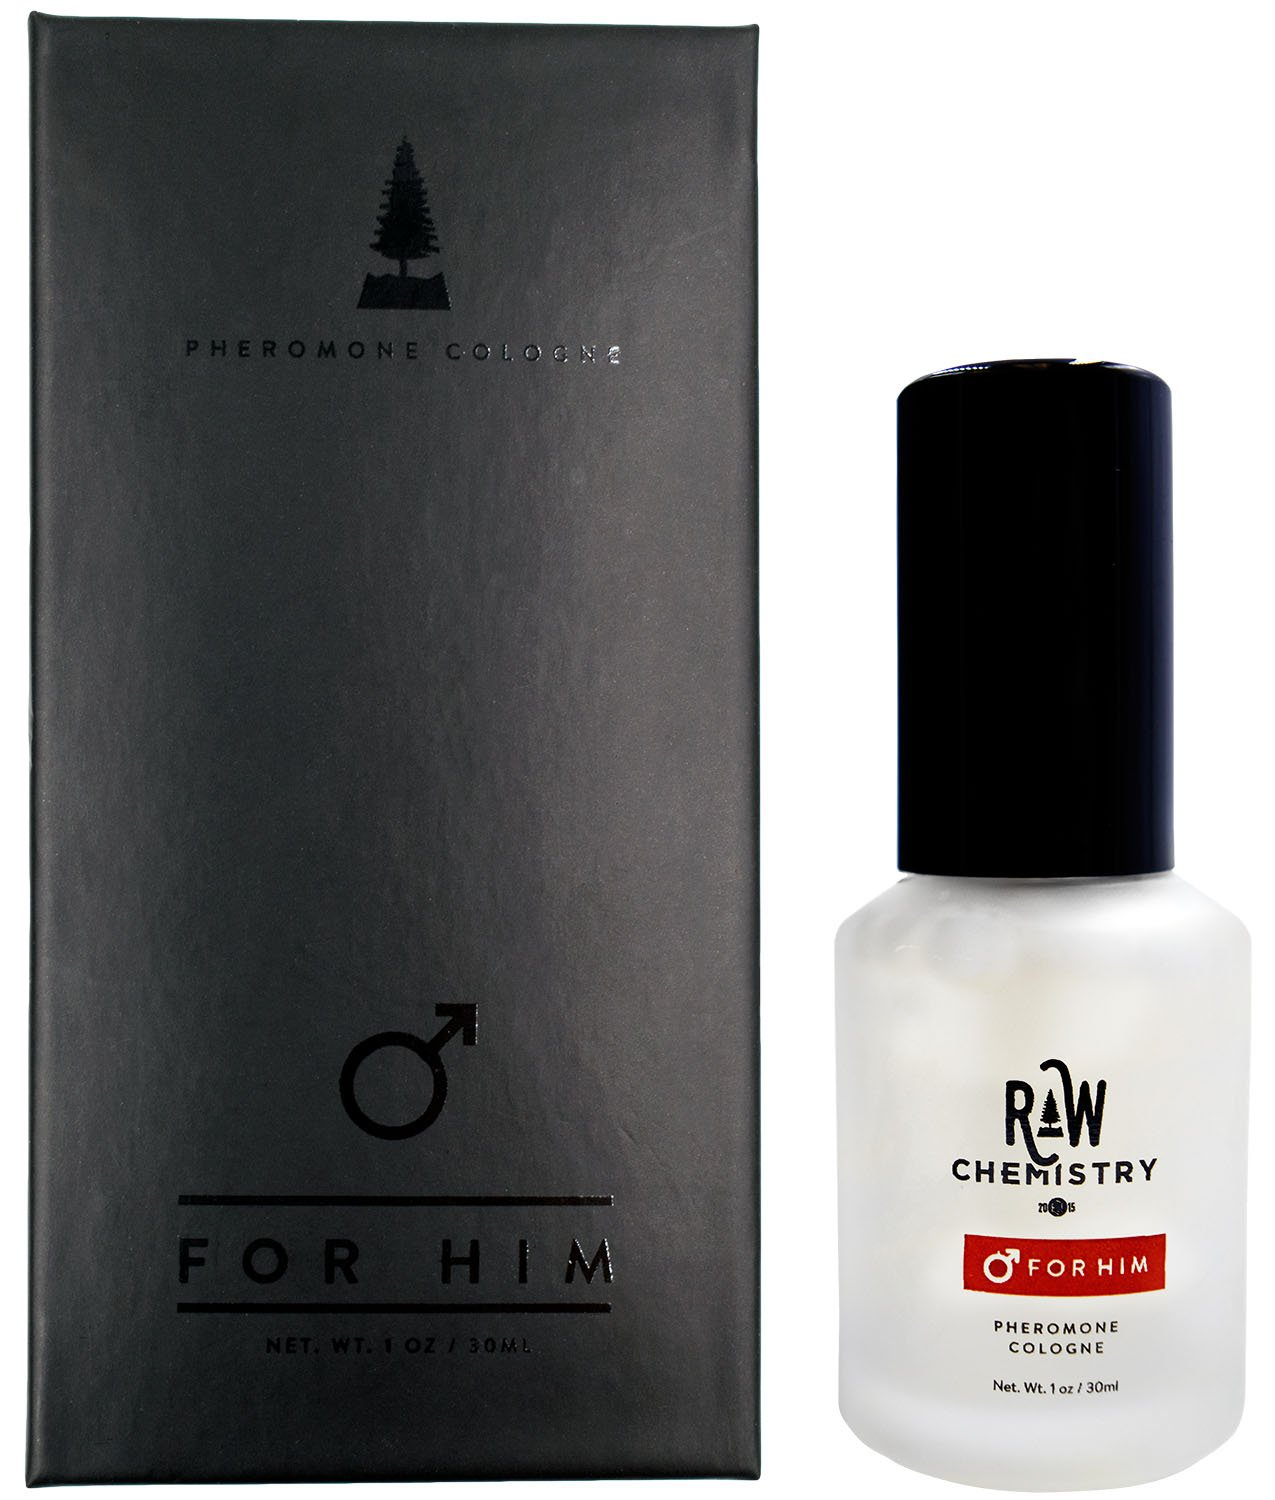 Pheromones For Men Pheromone Cologne [Attract Women] - Bold, Extra Strength Human Pheromones Formula by RawChemistry - 1 Fl Oz (Human Grade Pheromones to Attract Women) by RawChemistry (Image #4)